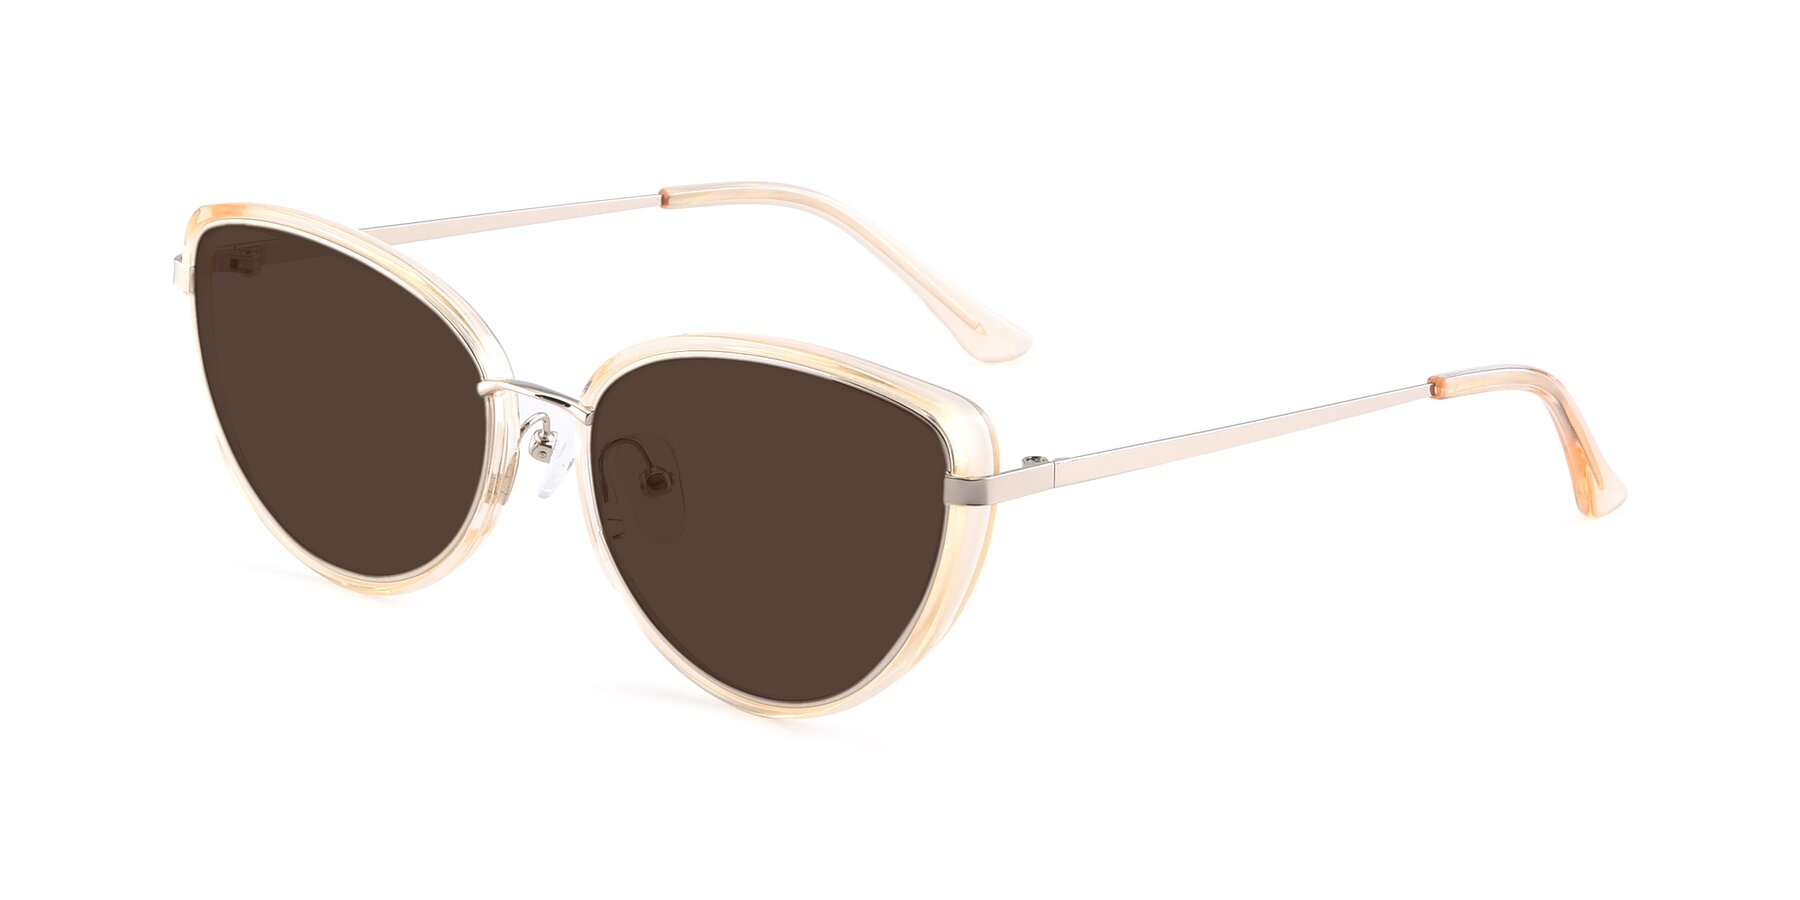 Angle of 17706 in Transparent Caramel-Silver with Brown Tinted Lenses